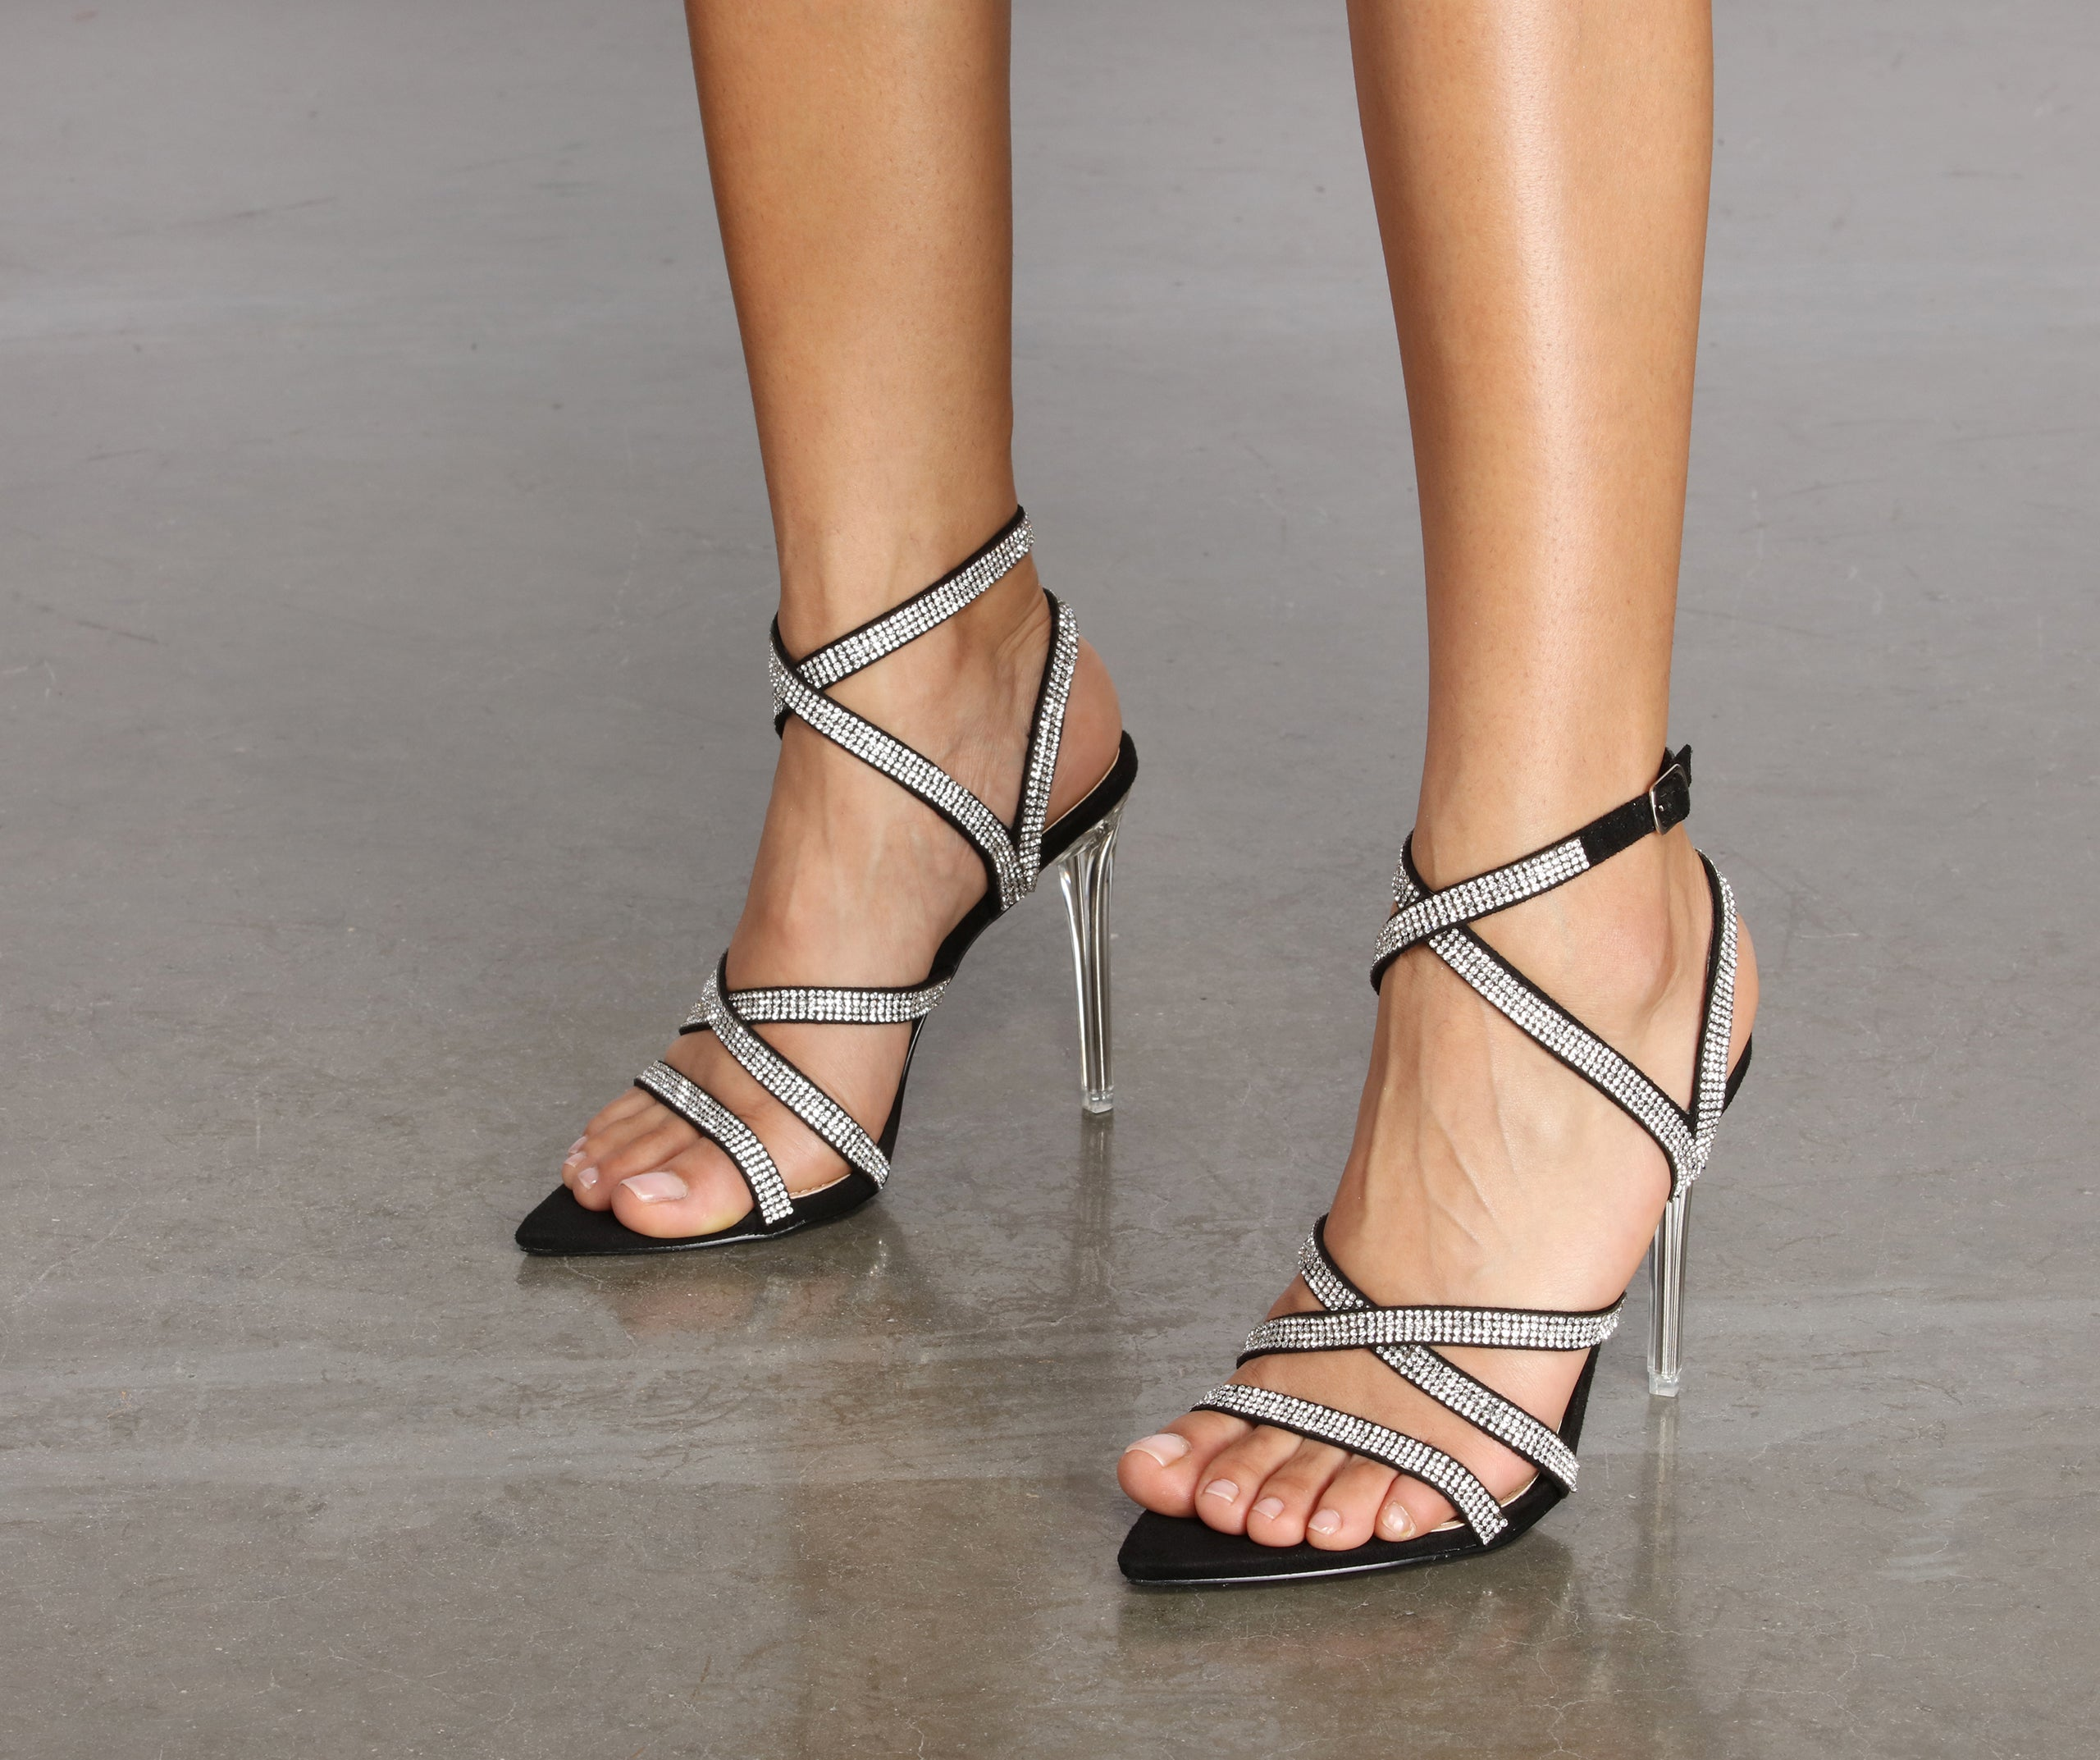 Stiletto Glitter Christmas Party Sandals Caged Evening Strap Open Toe Shoes size